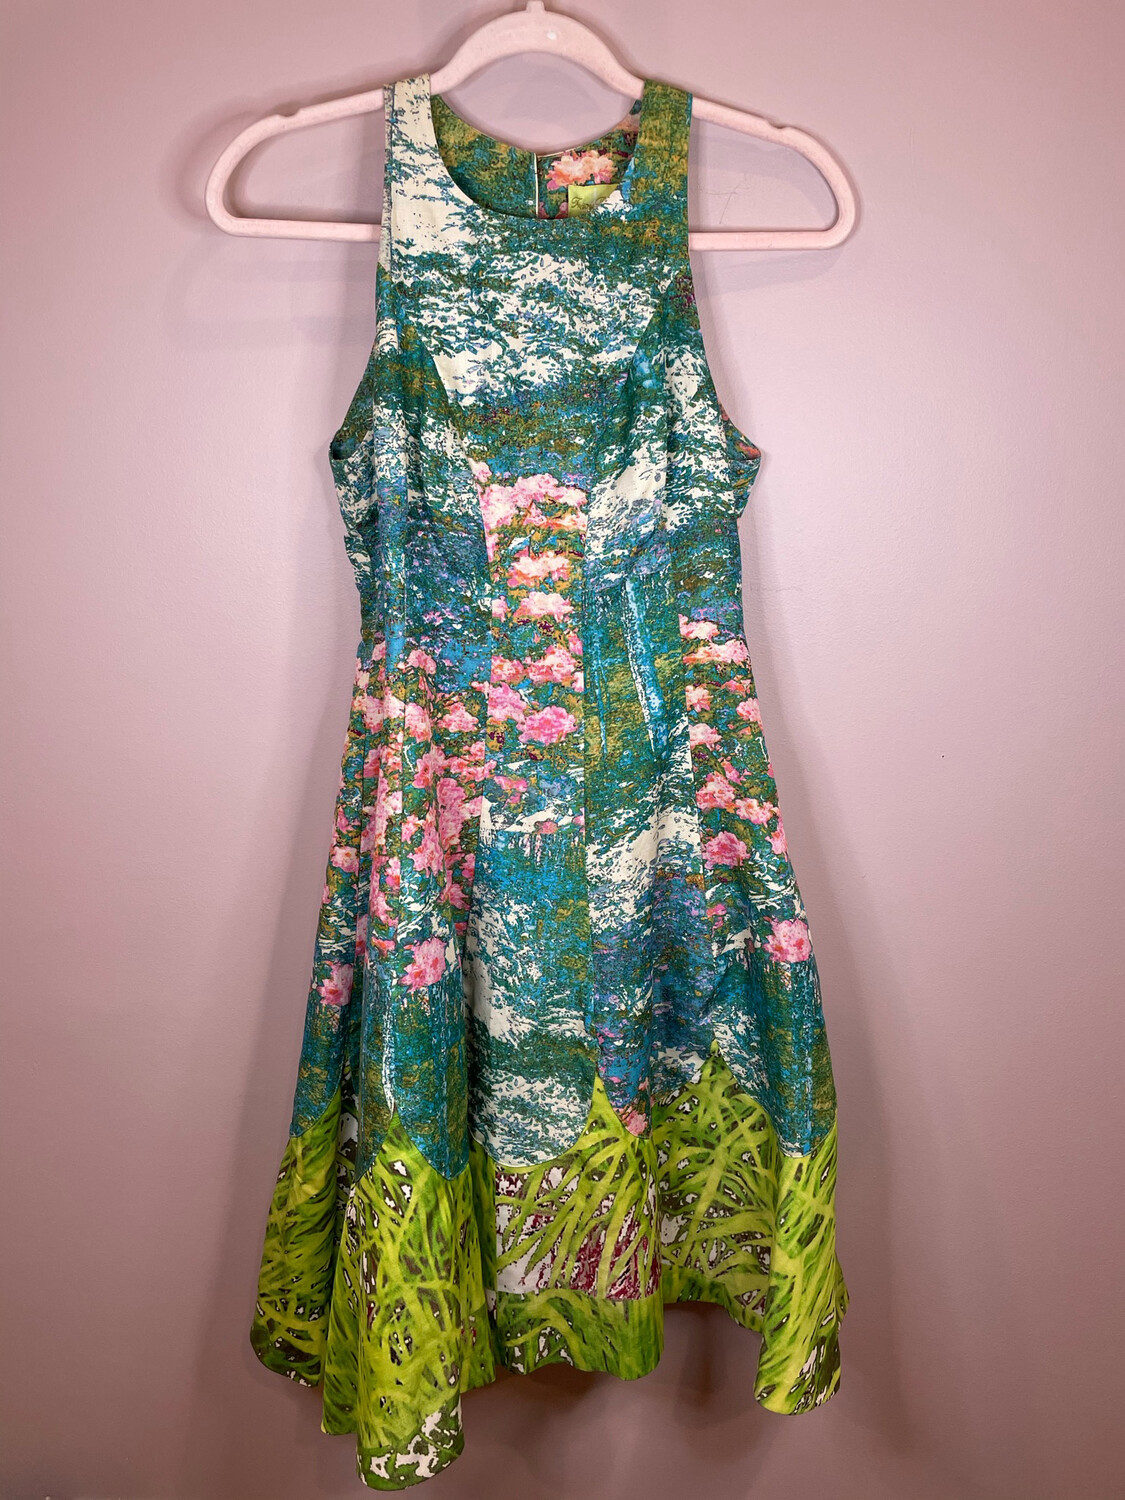 Tracy Reese Multicolor Floral Print Paneling Dress - Size 2